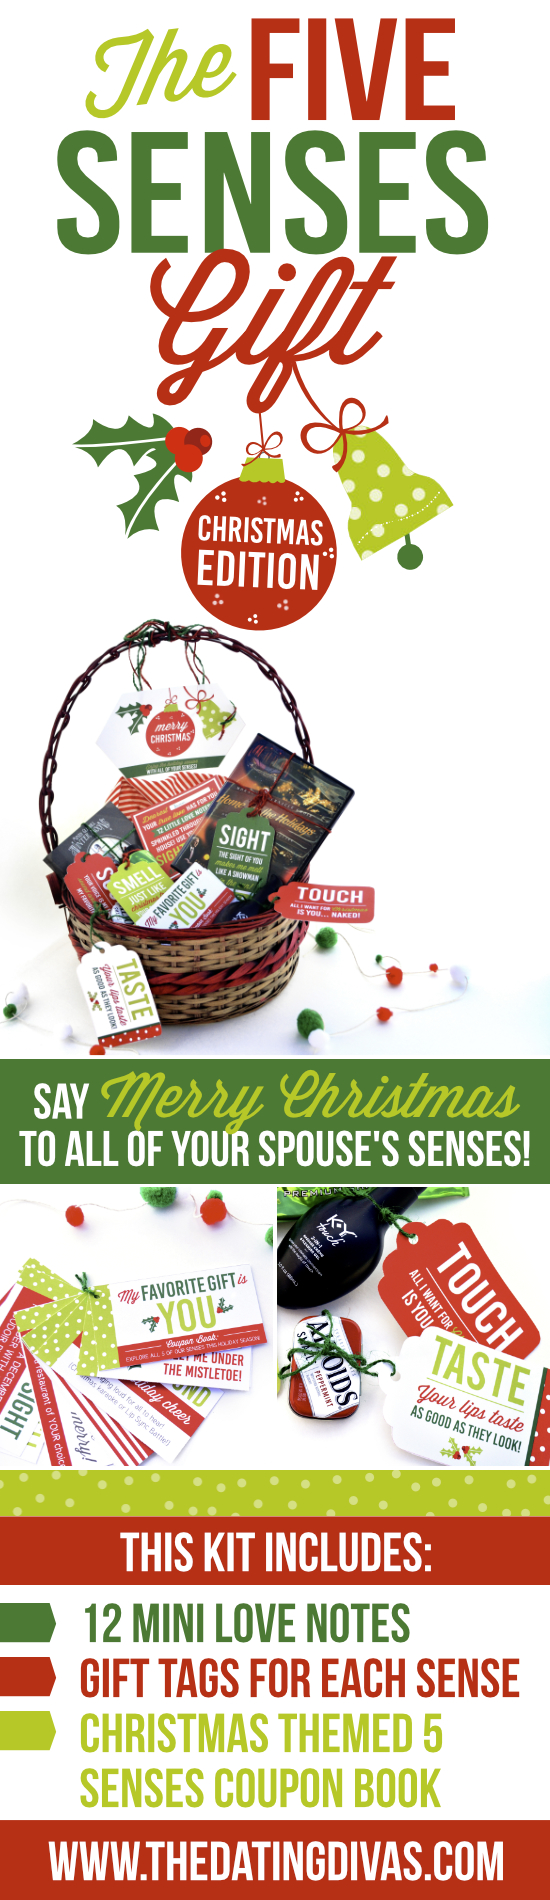 5 Senses Christmas Gift Idea that is perfect for a spouse!